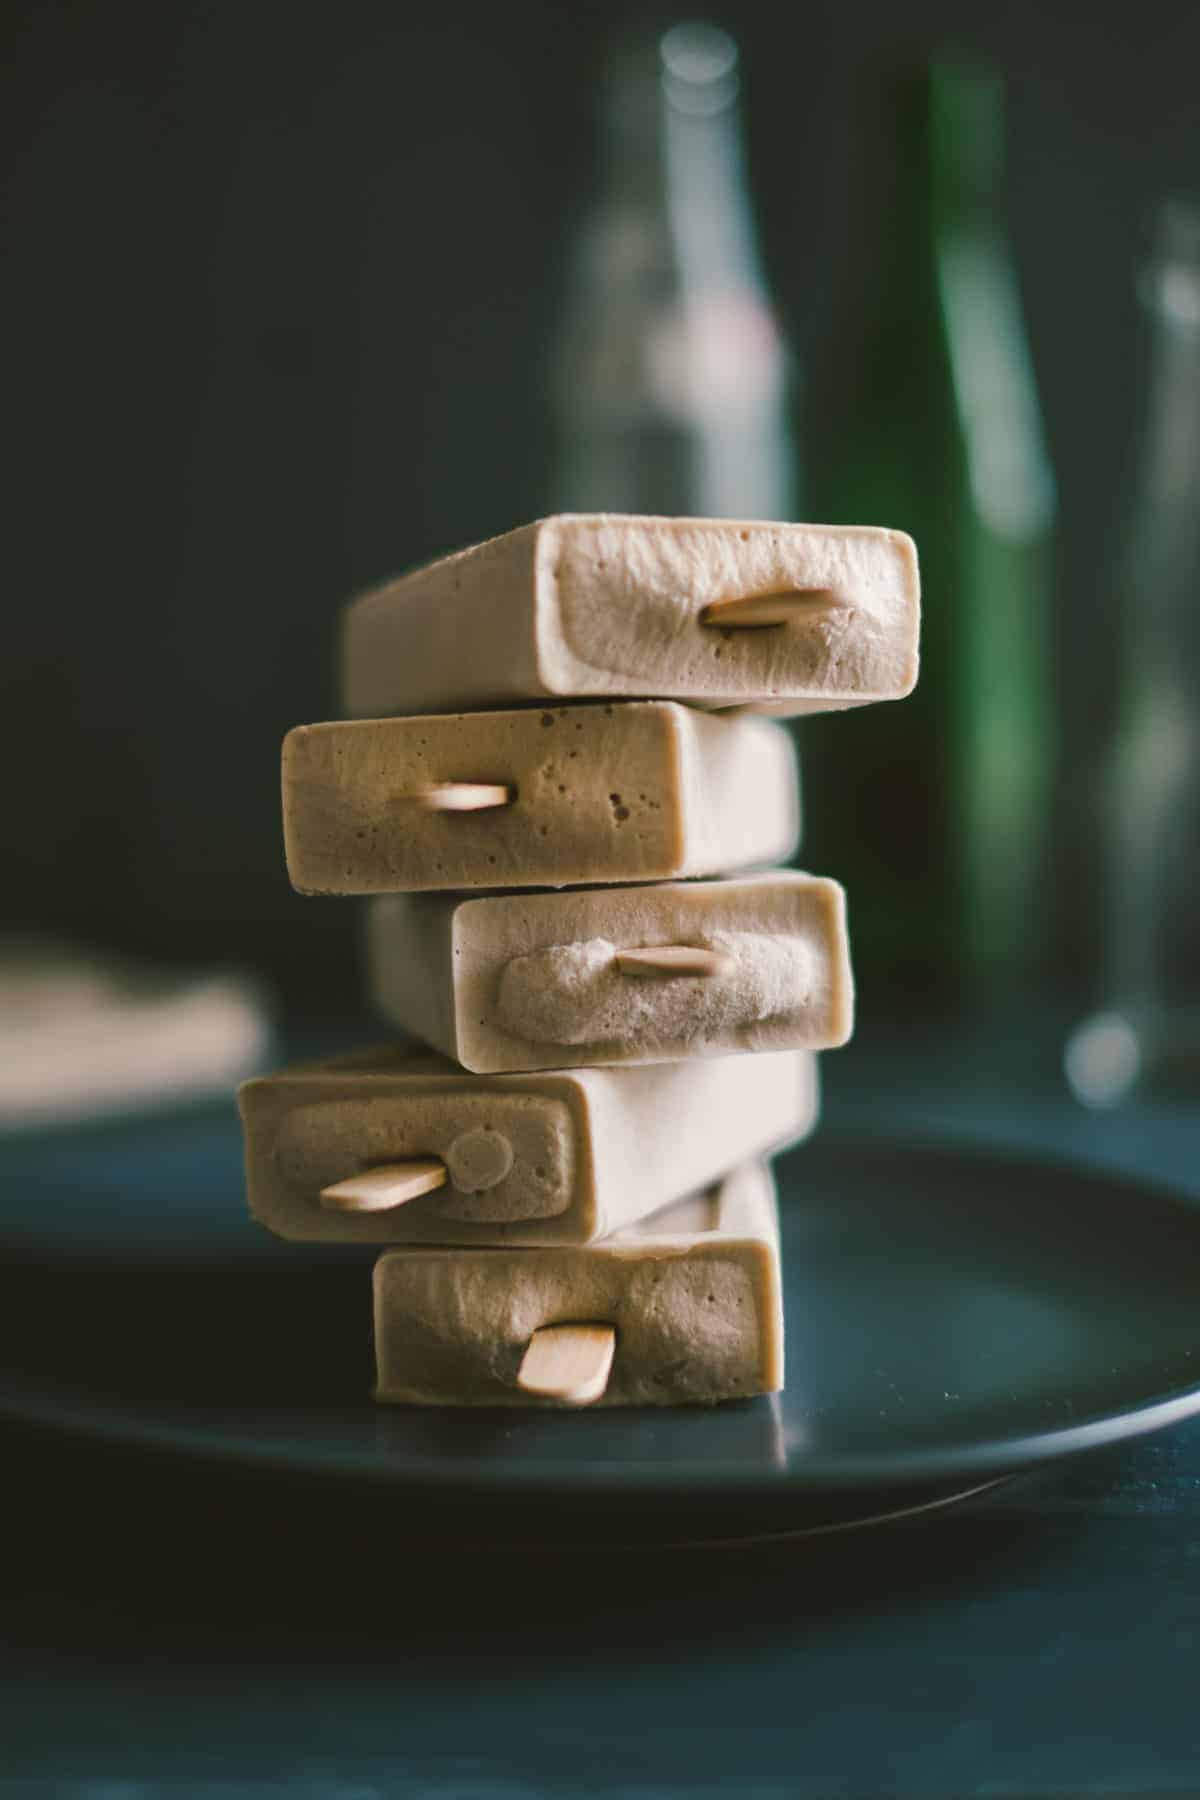 banana and cashew cream ice pops